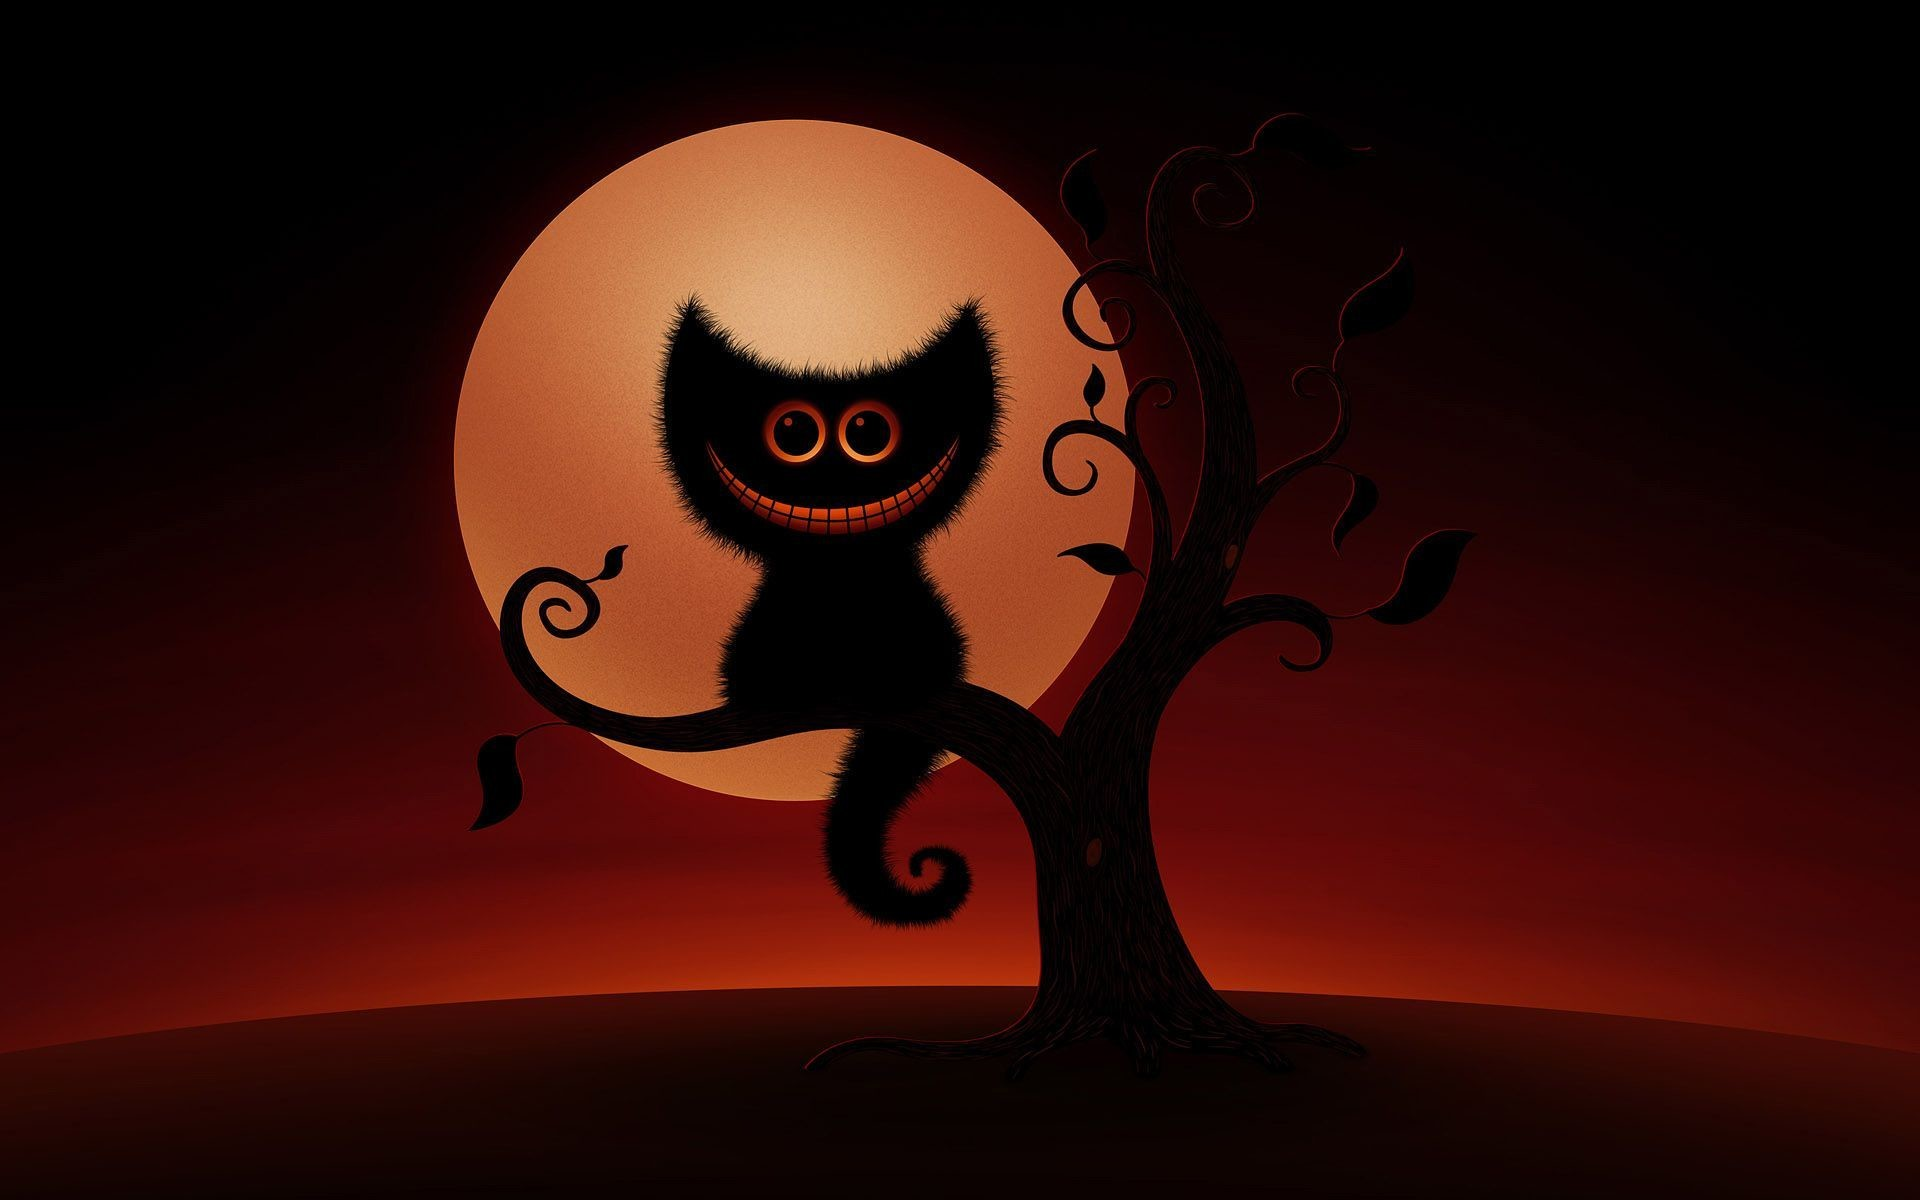 1920x1200 Halloween Cat HD Desktop Wallpaper, Background Image